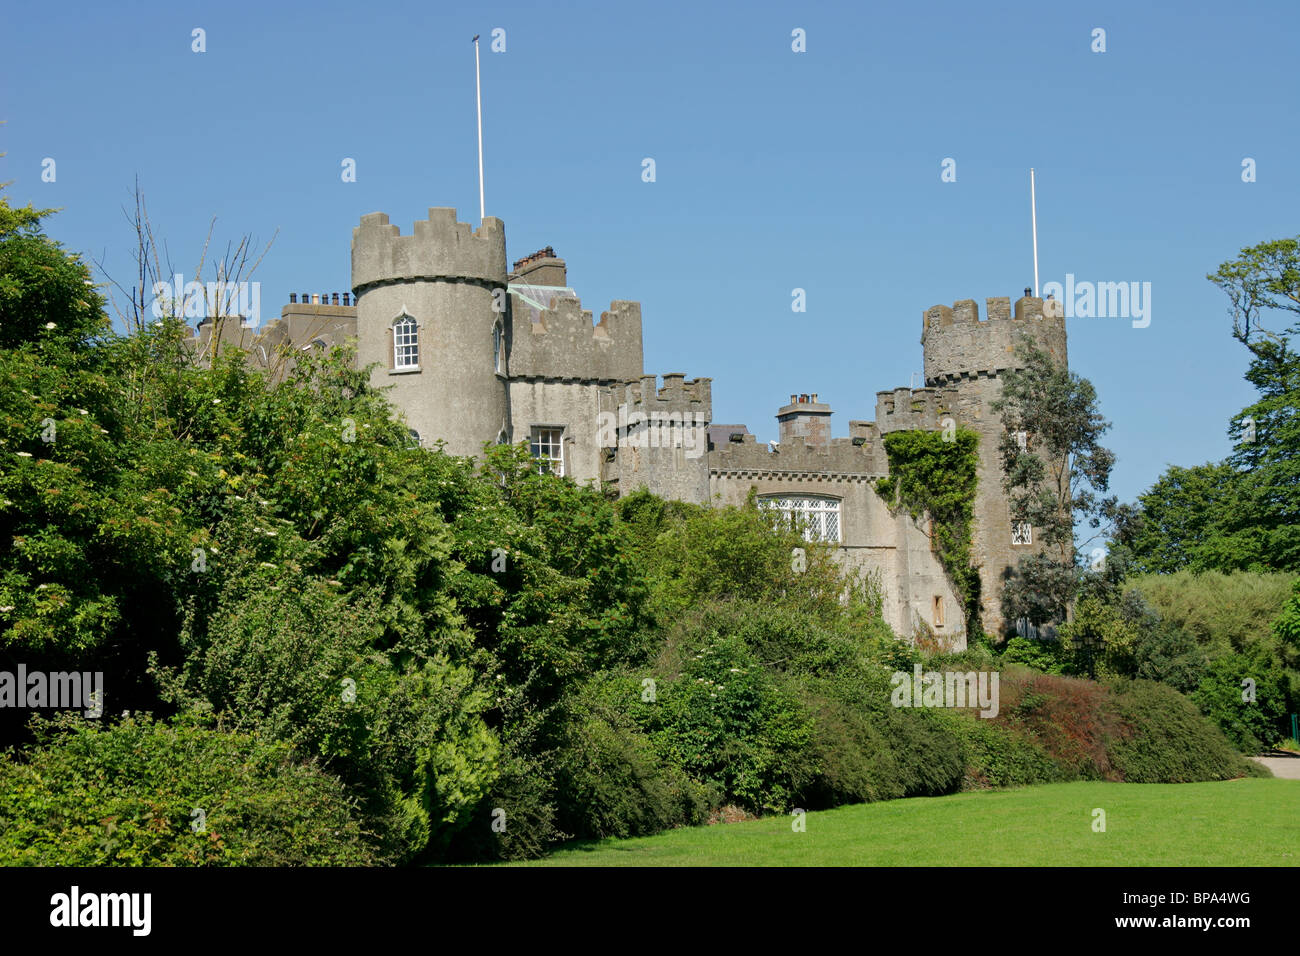 Front view of the historic 14 th century Malahide castle, Ireland, Europe - Stock Image